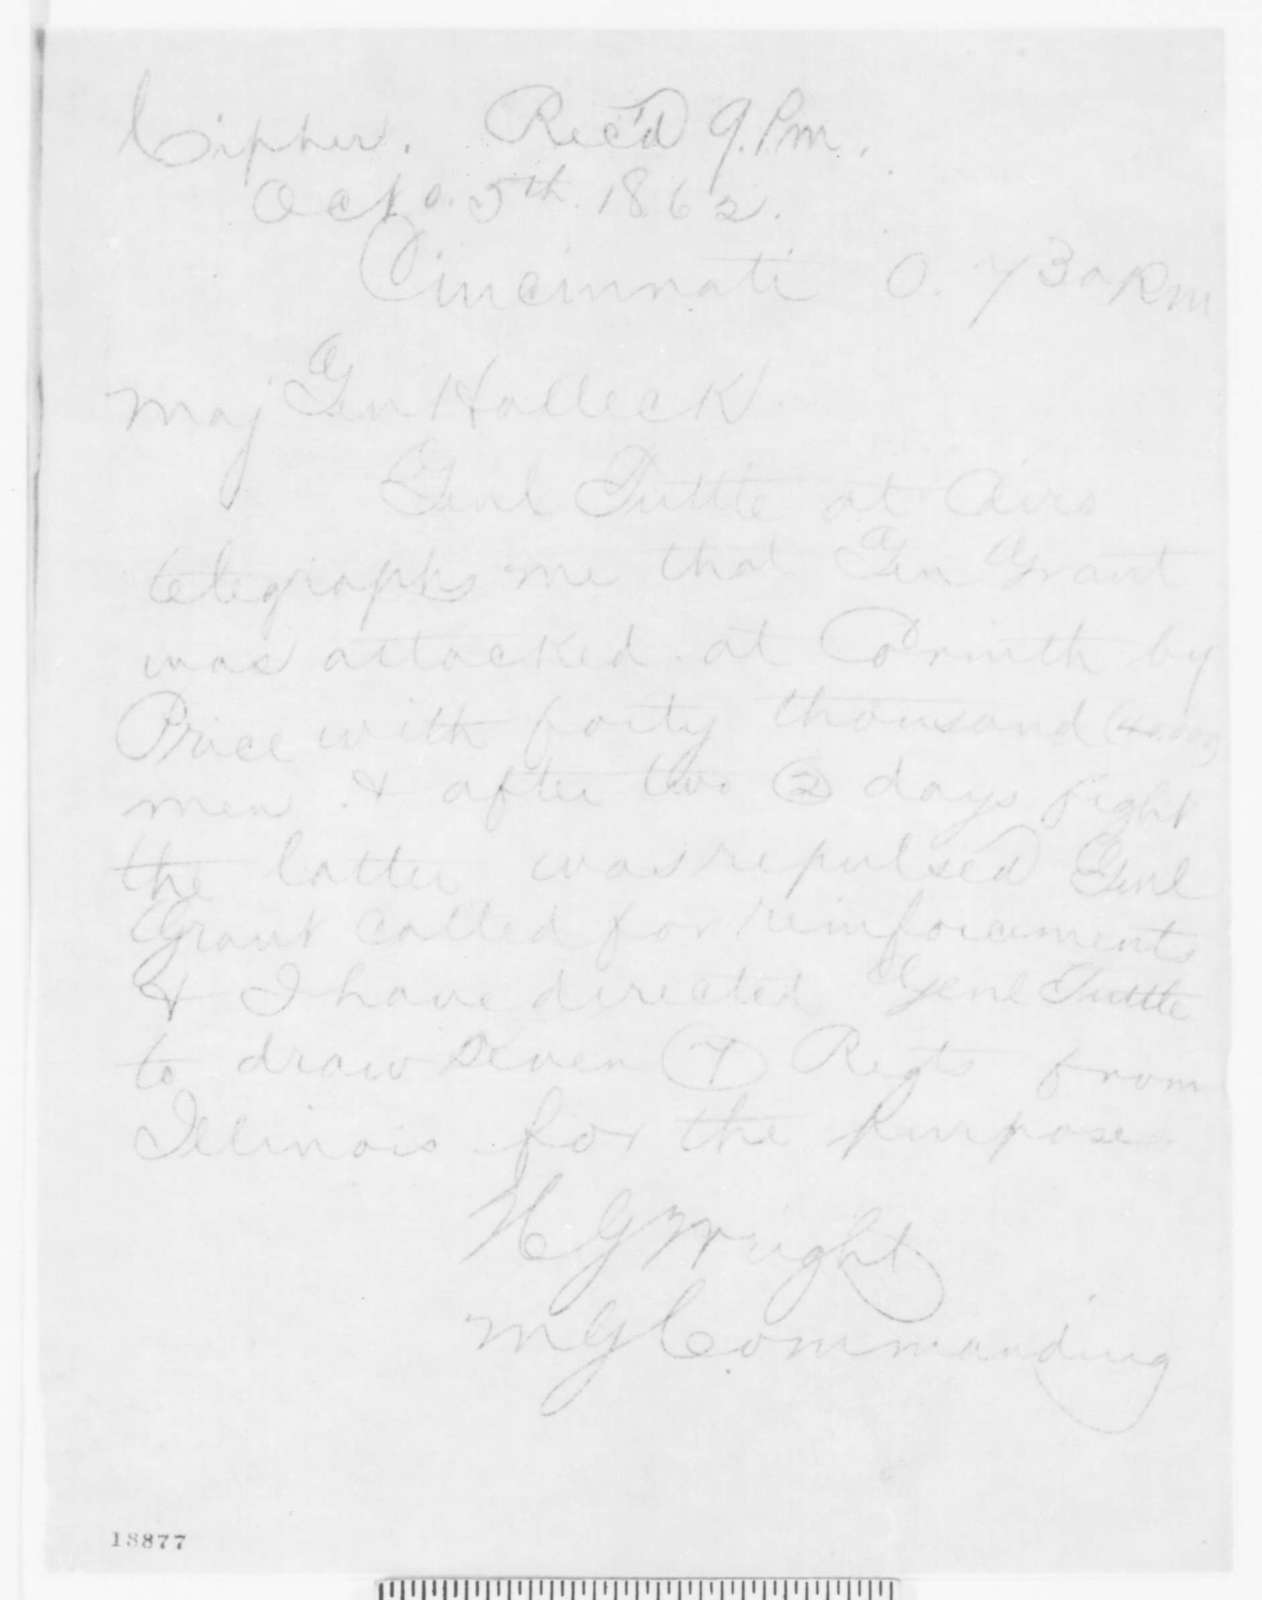 Horatio G. Wright to Henry W. Halleck, Sunday, October 05, 1862  (Telegram concerning military affairs)